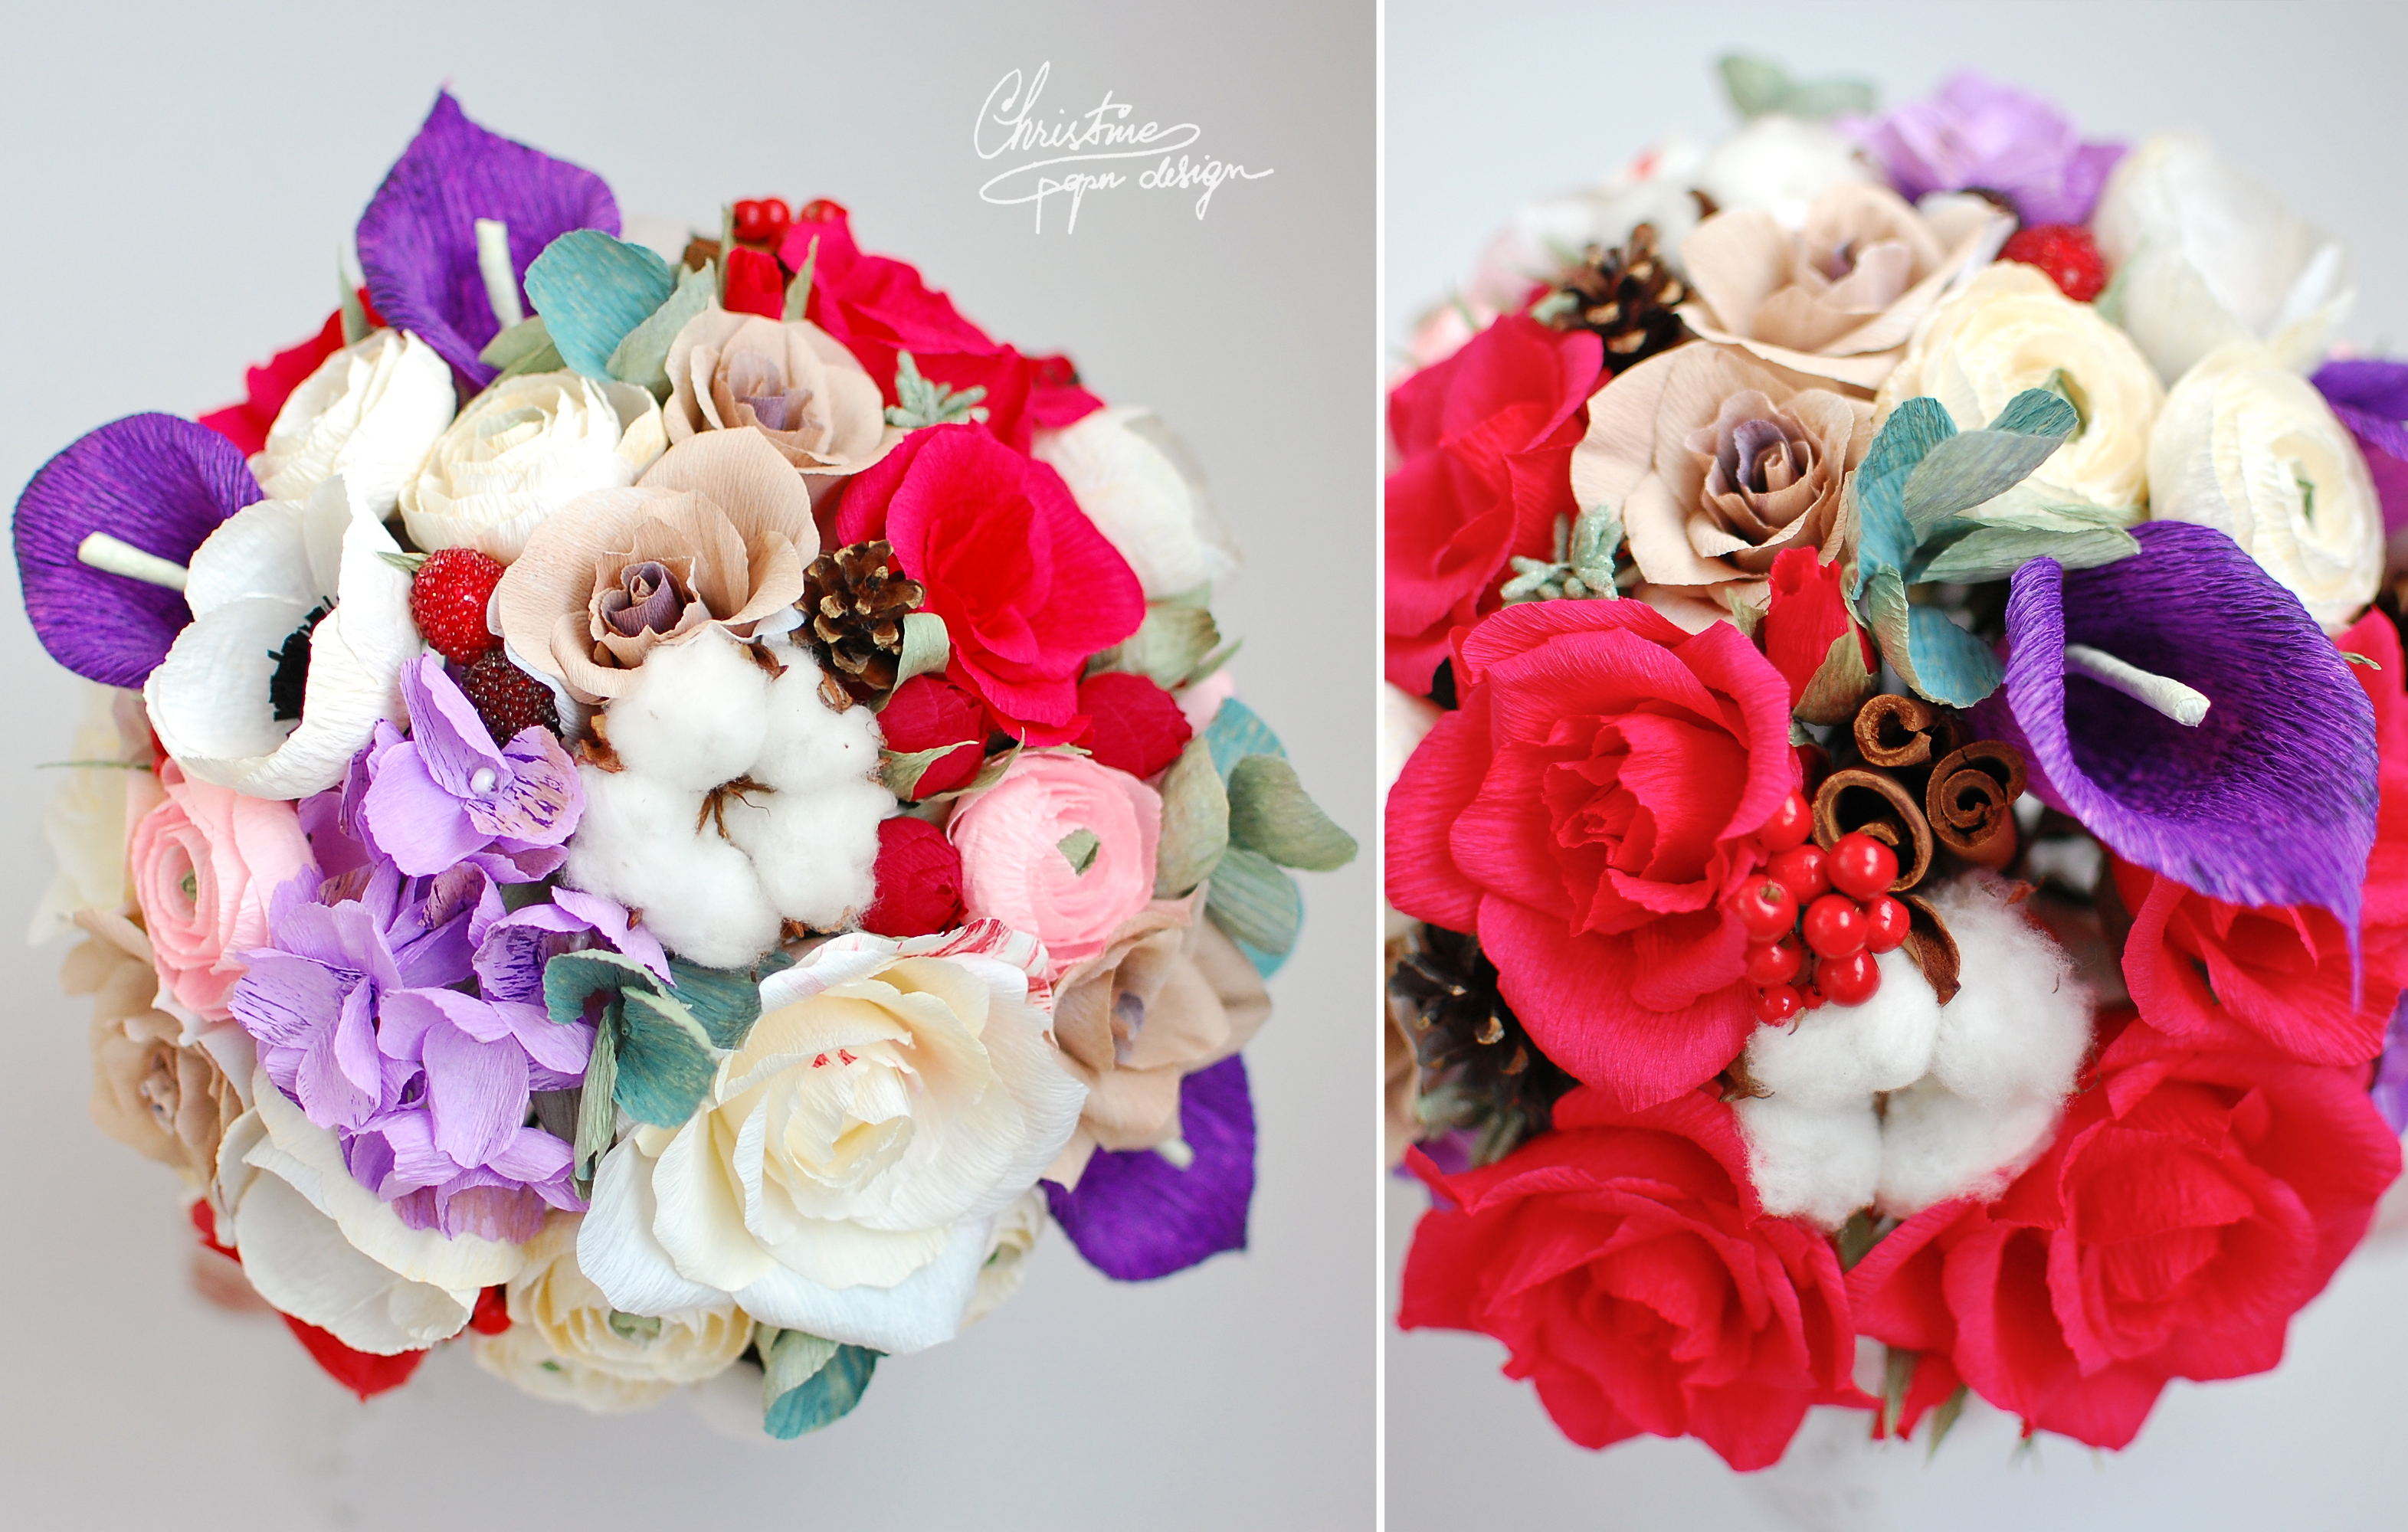 Christine paper design - paper flowers (6)